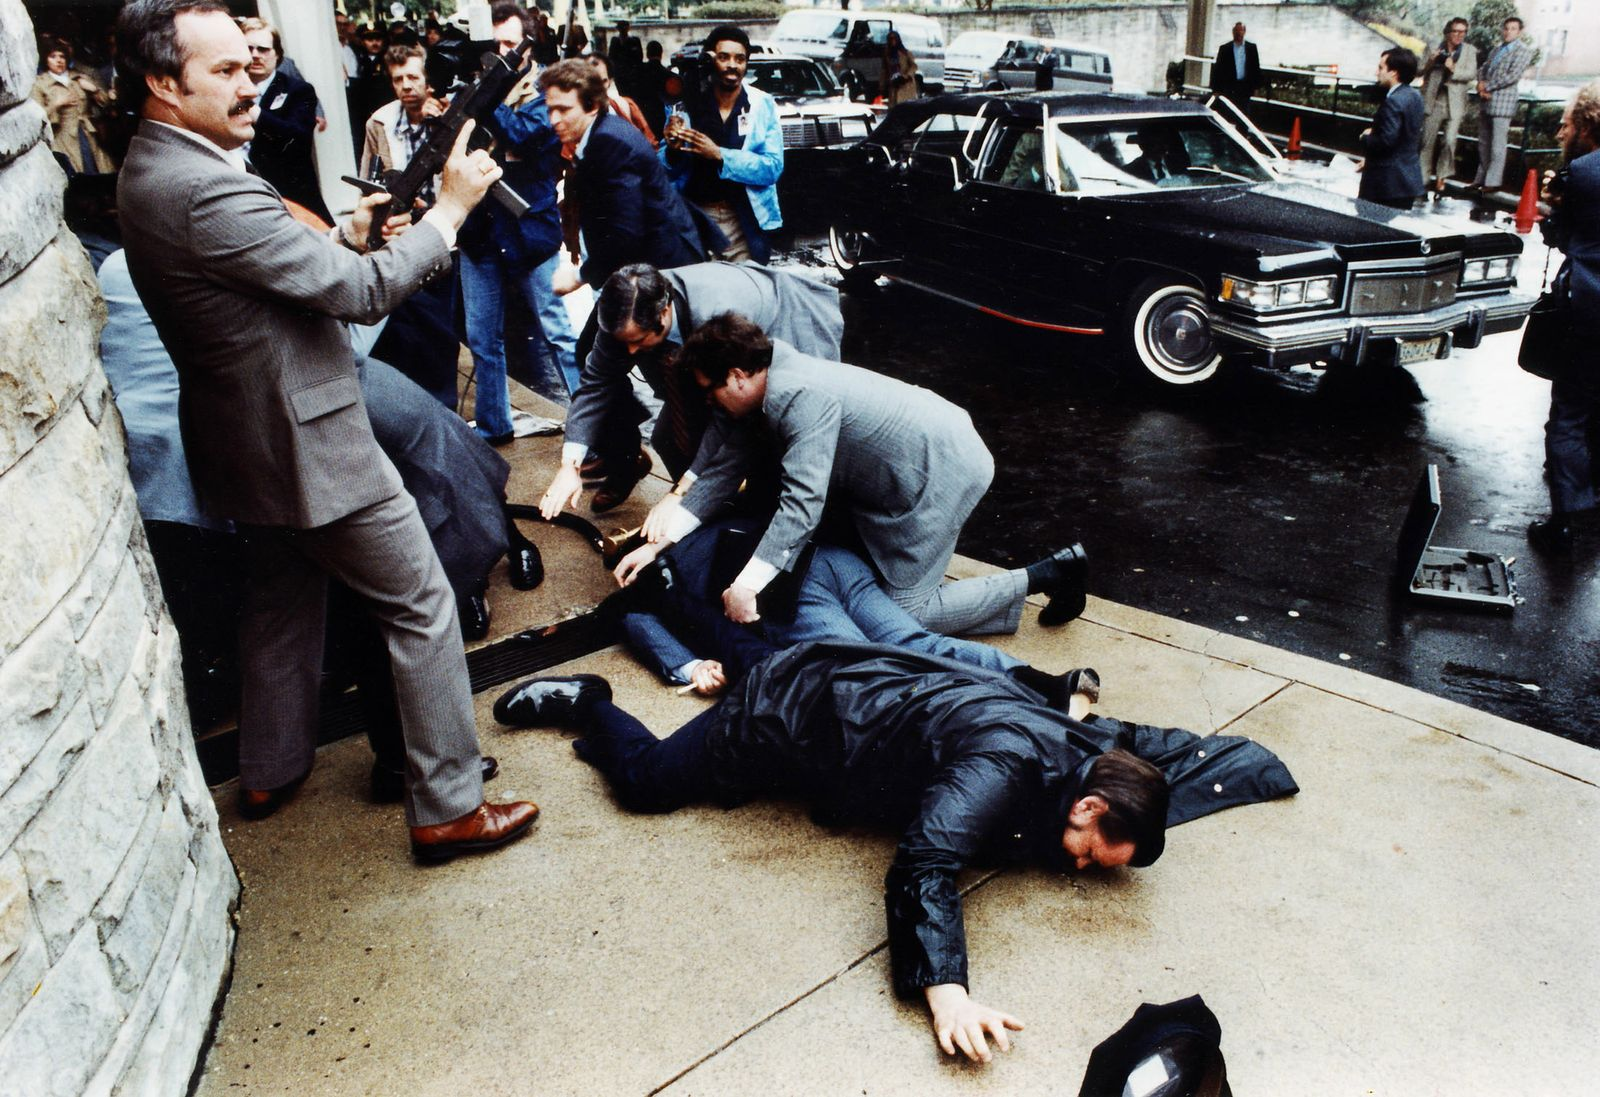 FILE PHOTO SHOWING AFTERMATH OF ASSASSINATION ATTEMPT AGAINST FORMER PRESIDENT RONALD REAGAN